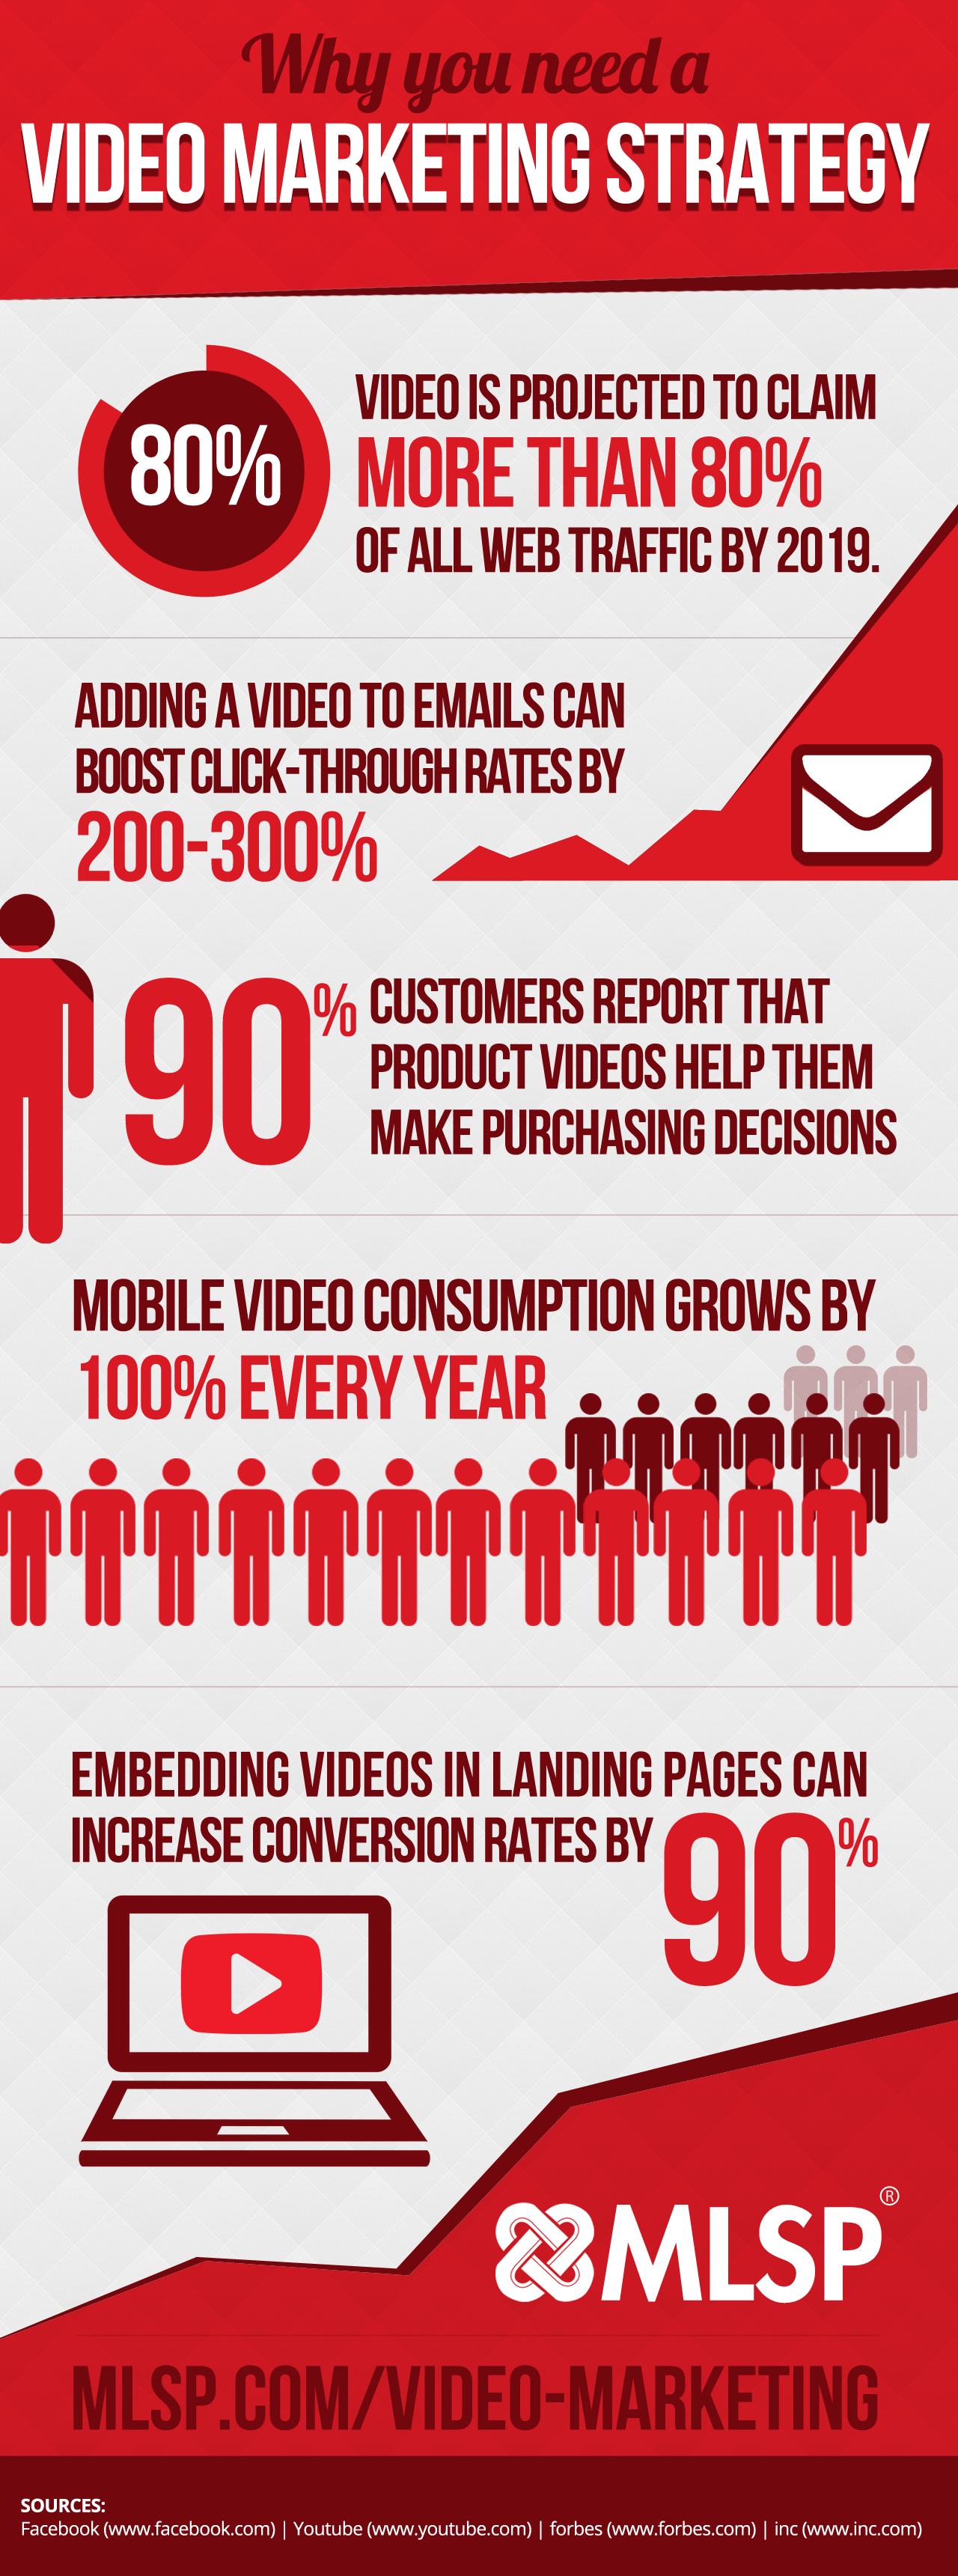 Video Marketing Strategy Statistics